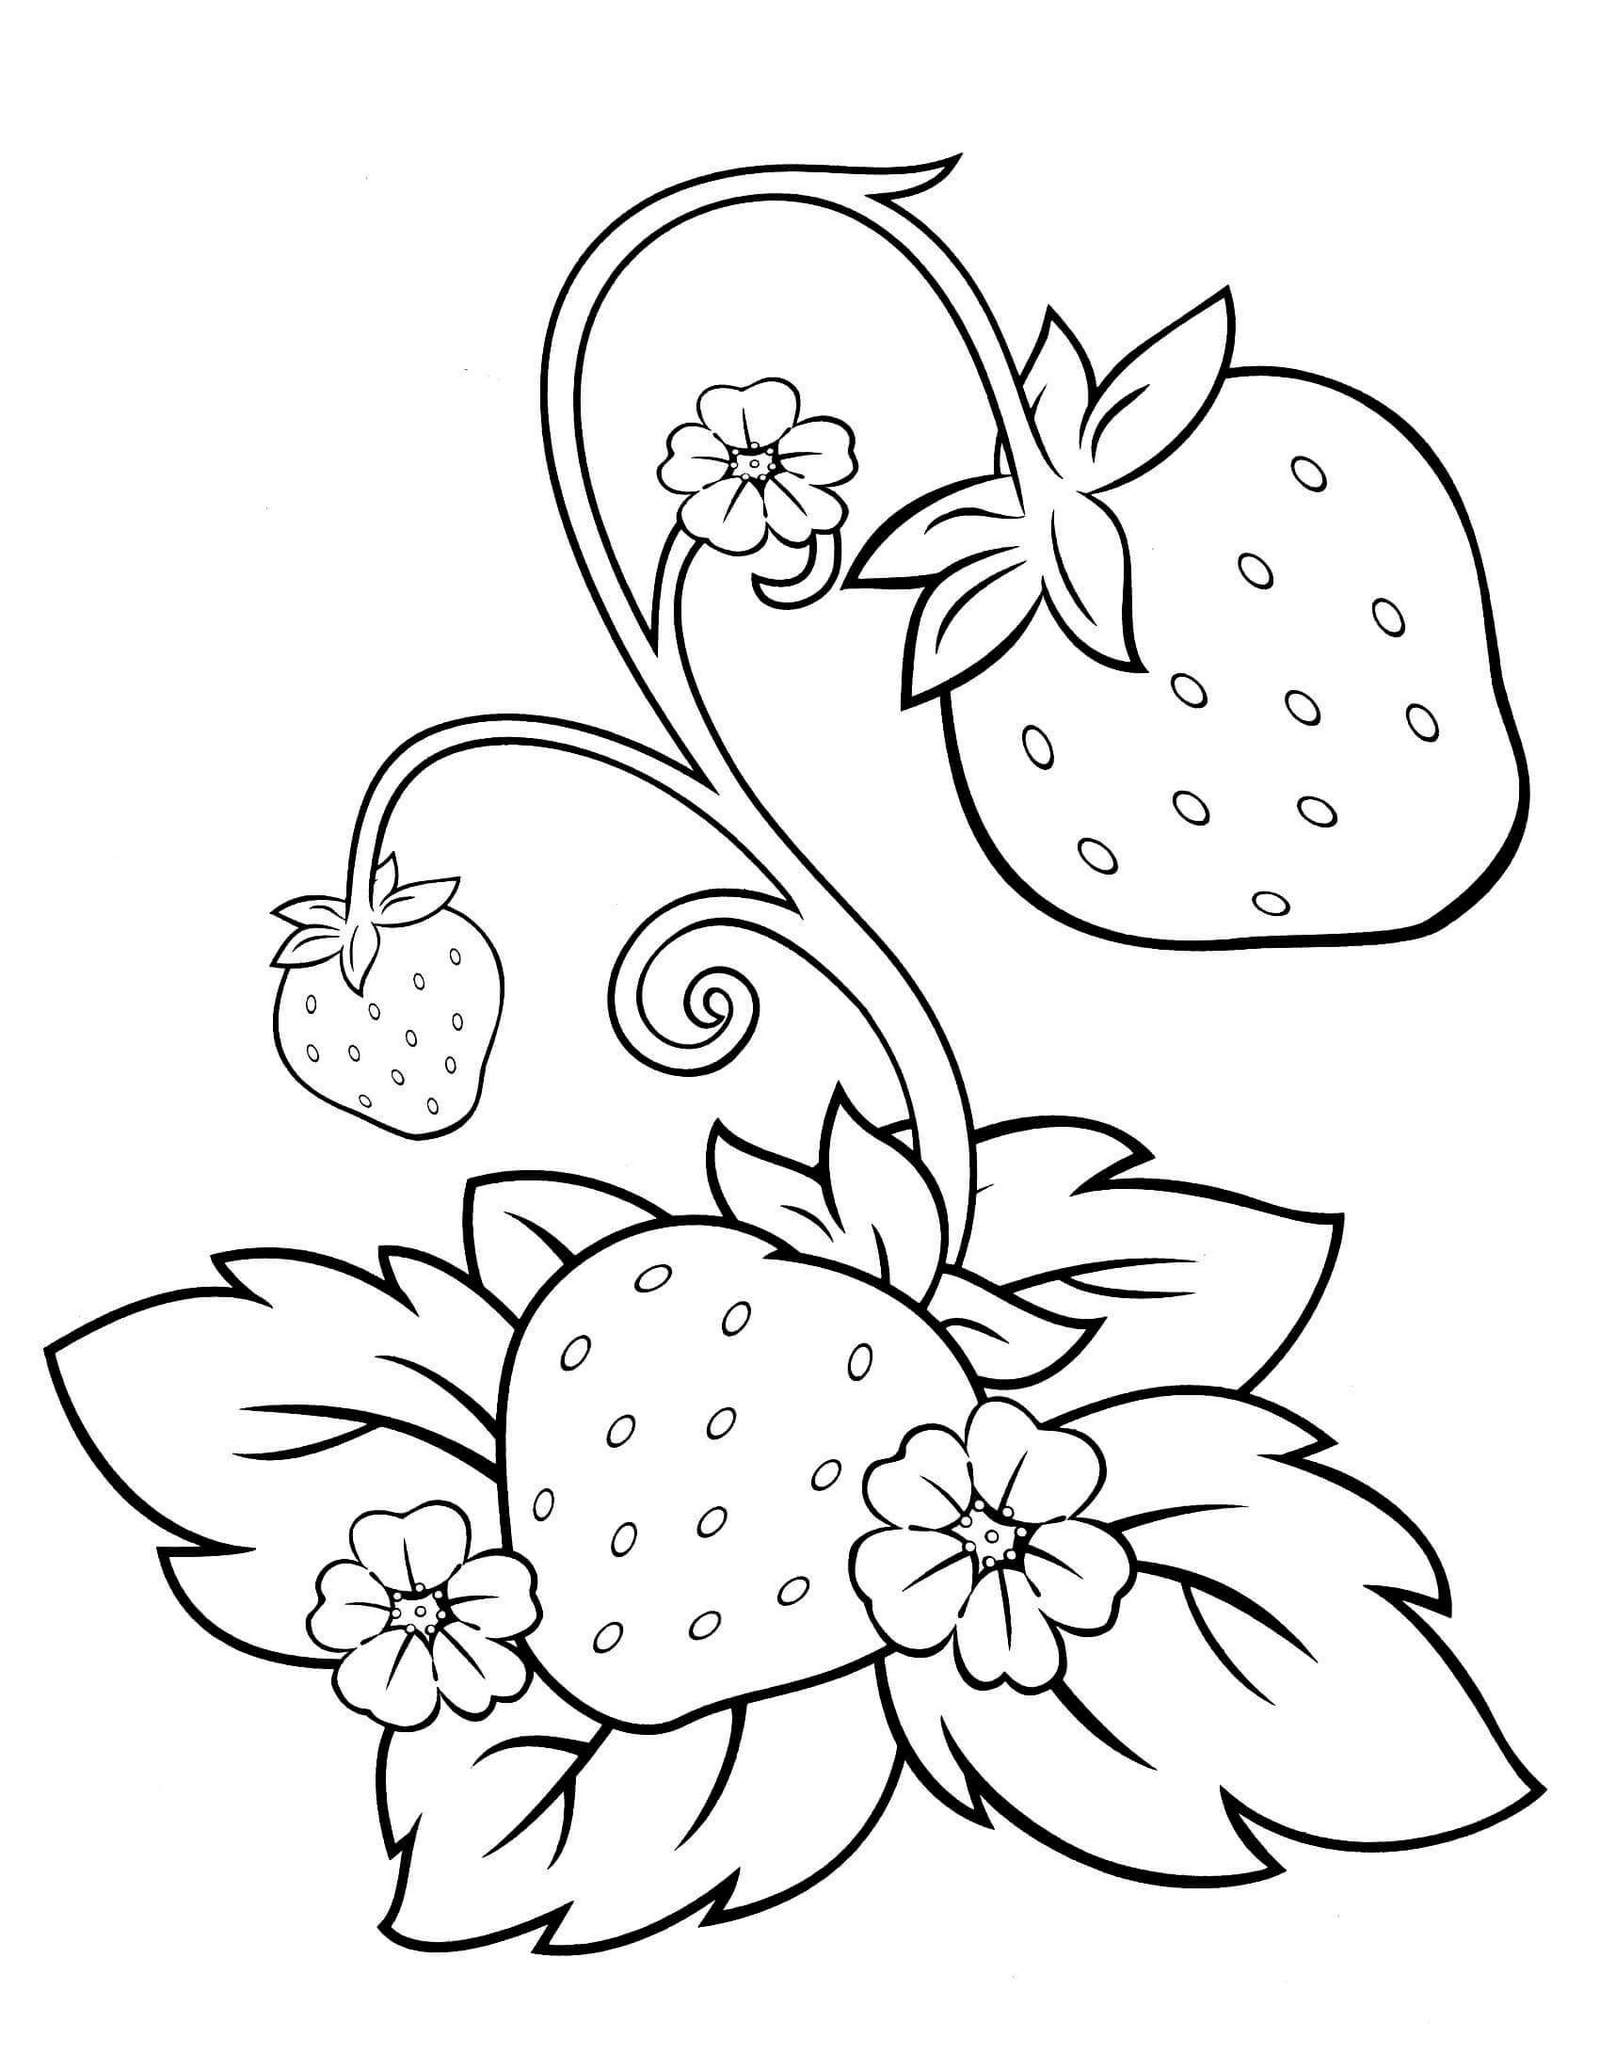 strawberry coloring page strawberries coloring pages coloring pages to download page coloring strawberry